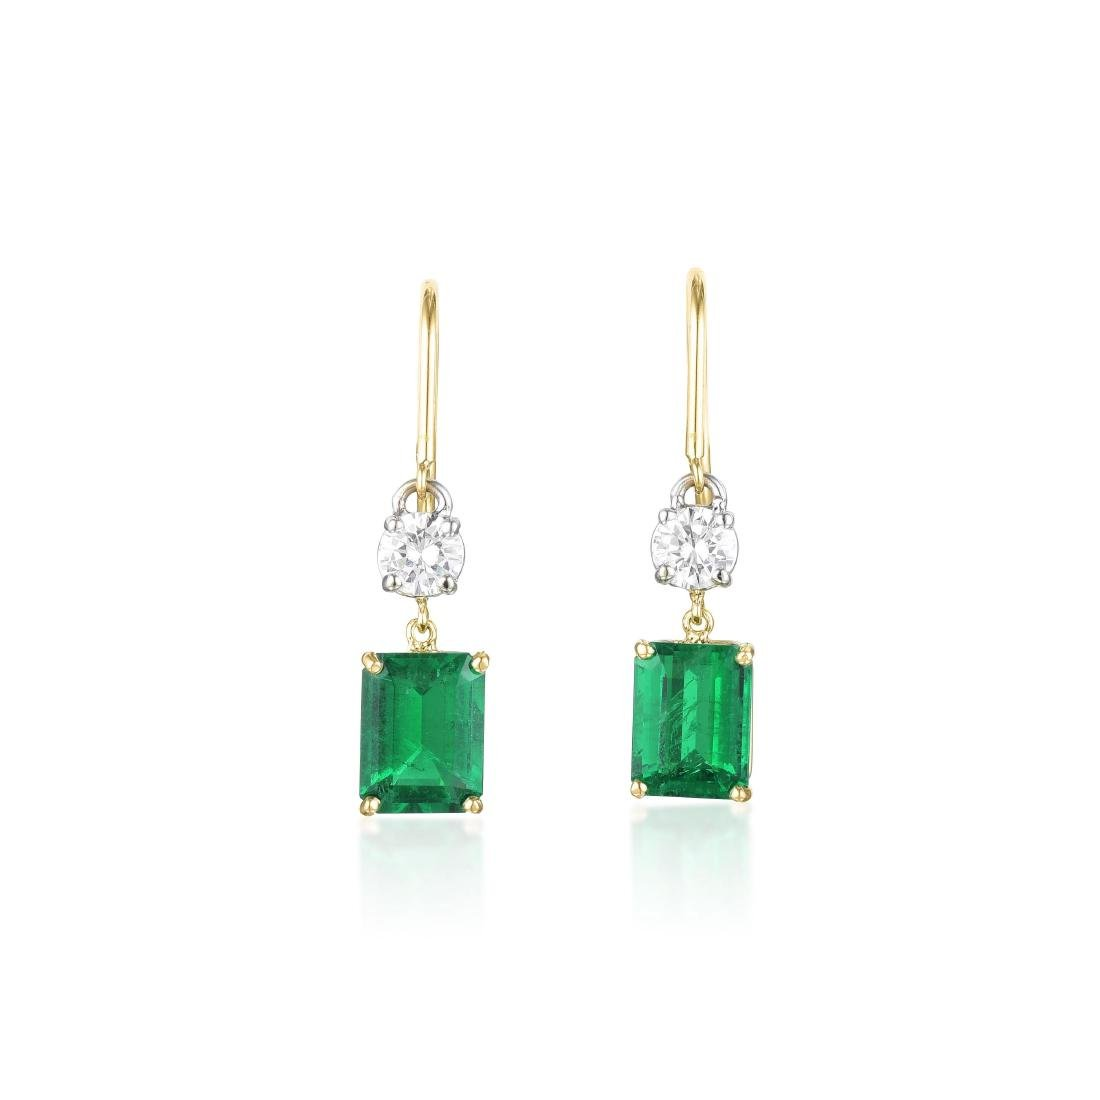 A Pair of Emerald and Diamond Drop Earrings